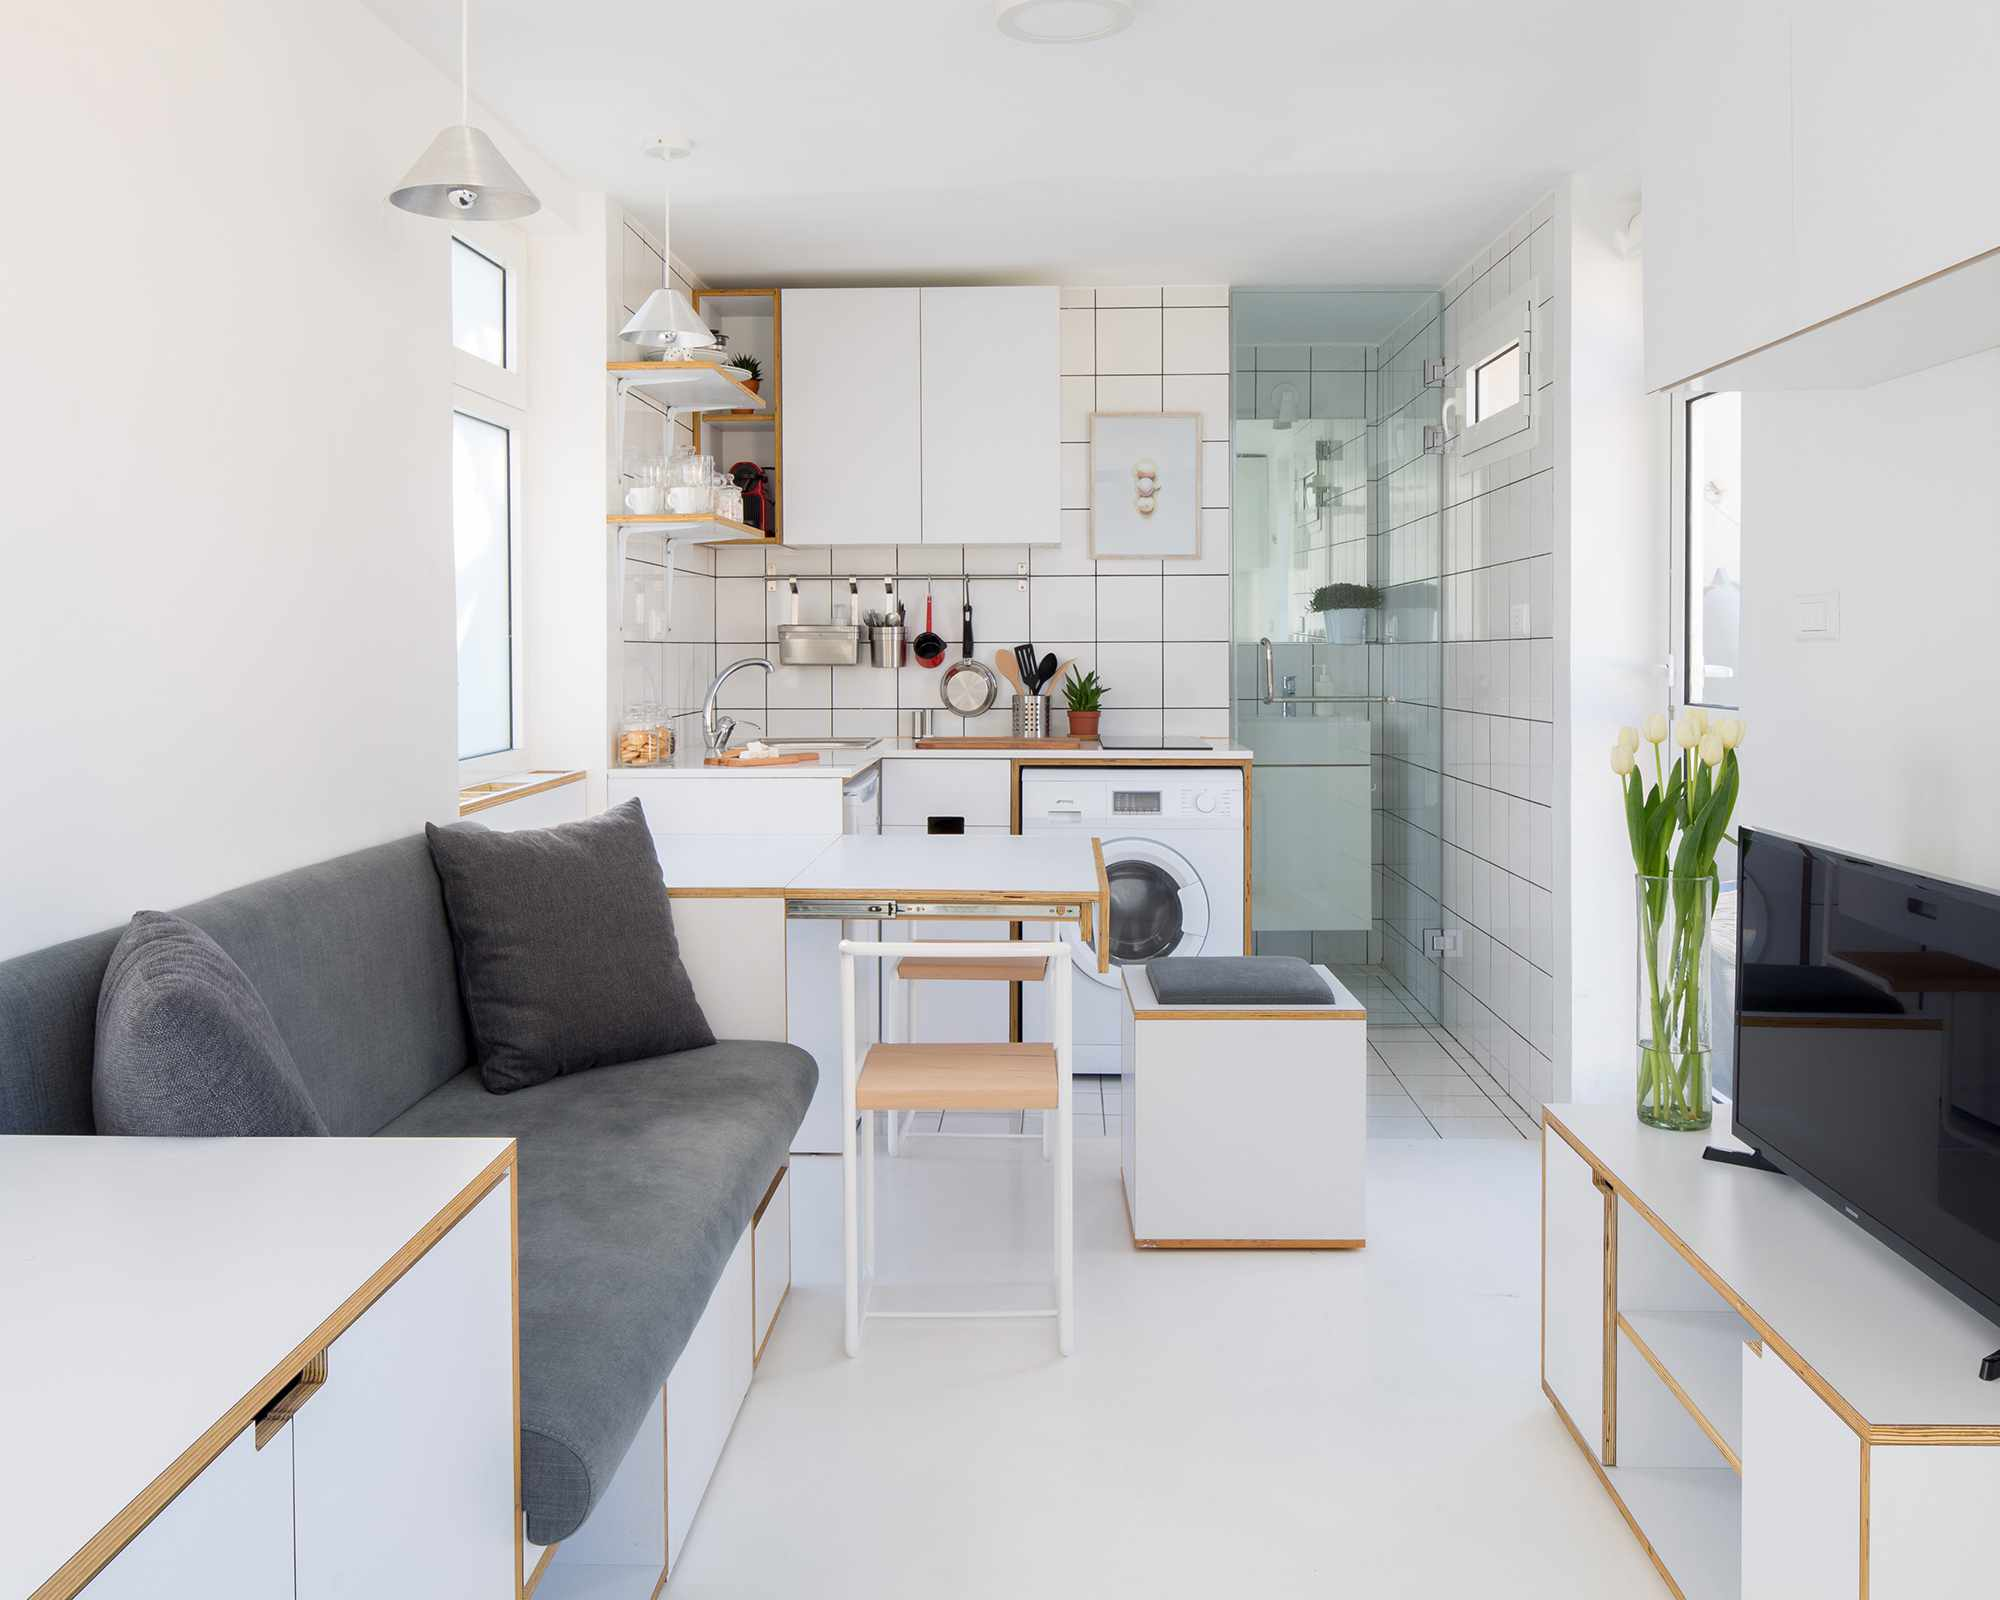 The Shoebox micro-apartment by Elie Metni expanded dining table